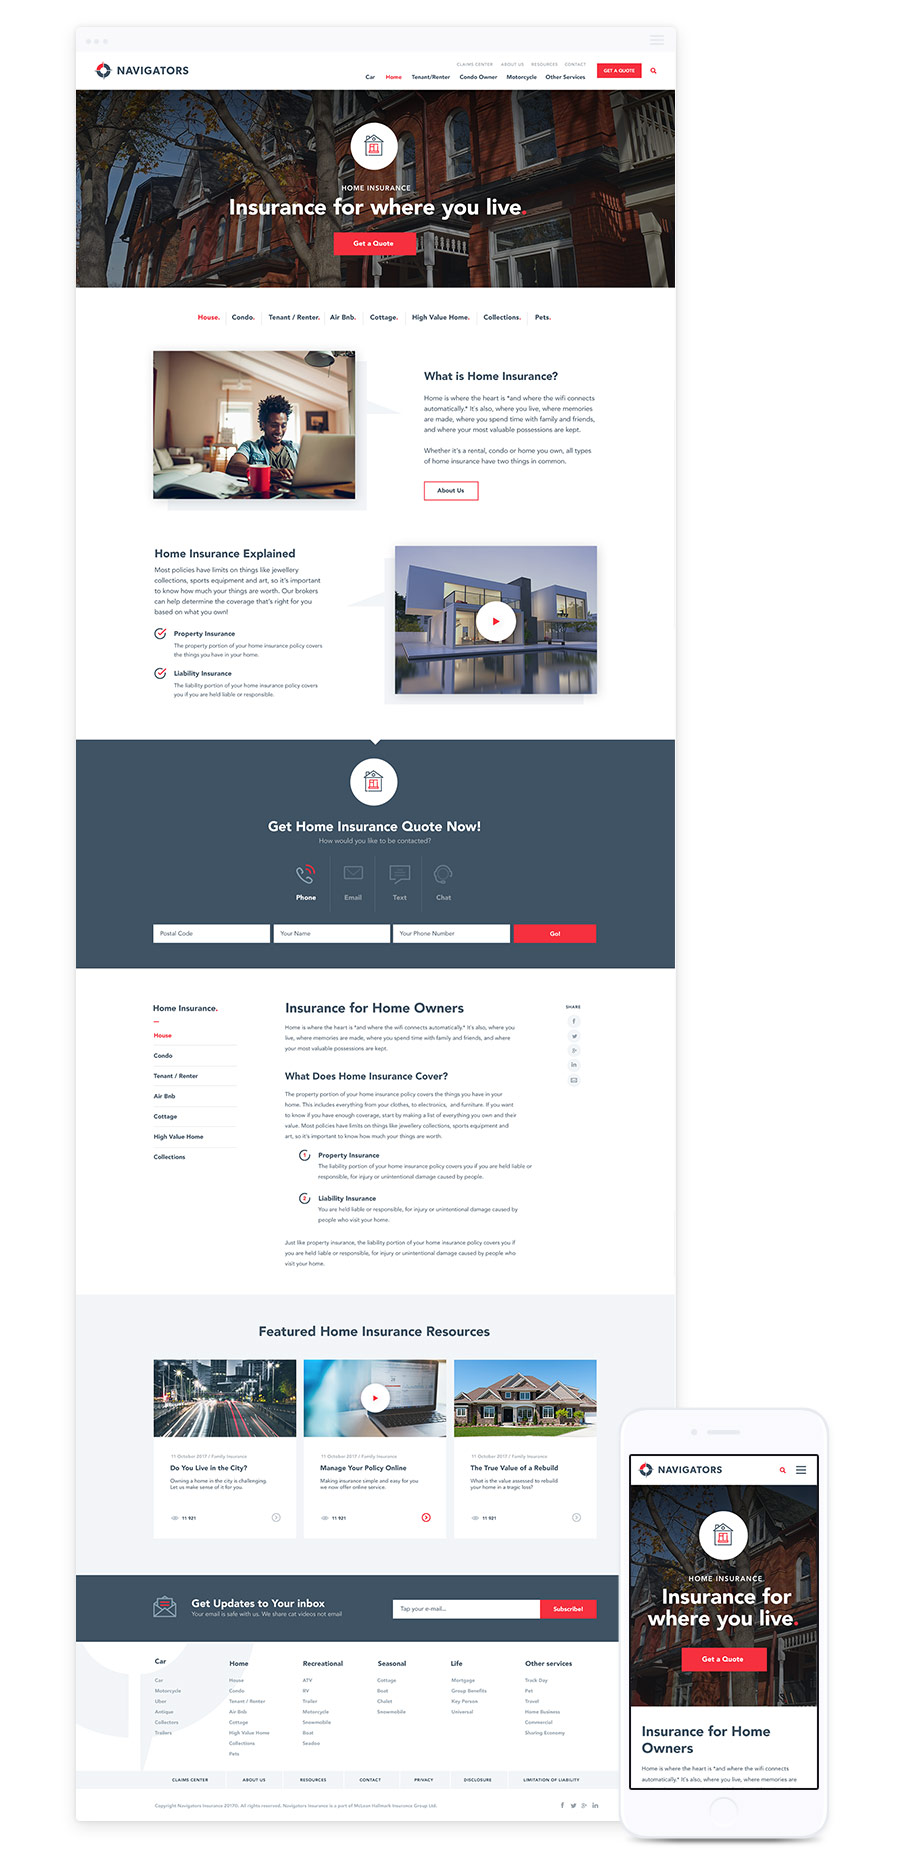 Responsive Web Design for Insurance Companies – Navigators Insurance by Parachute Design